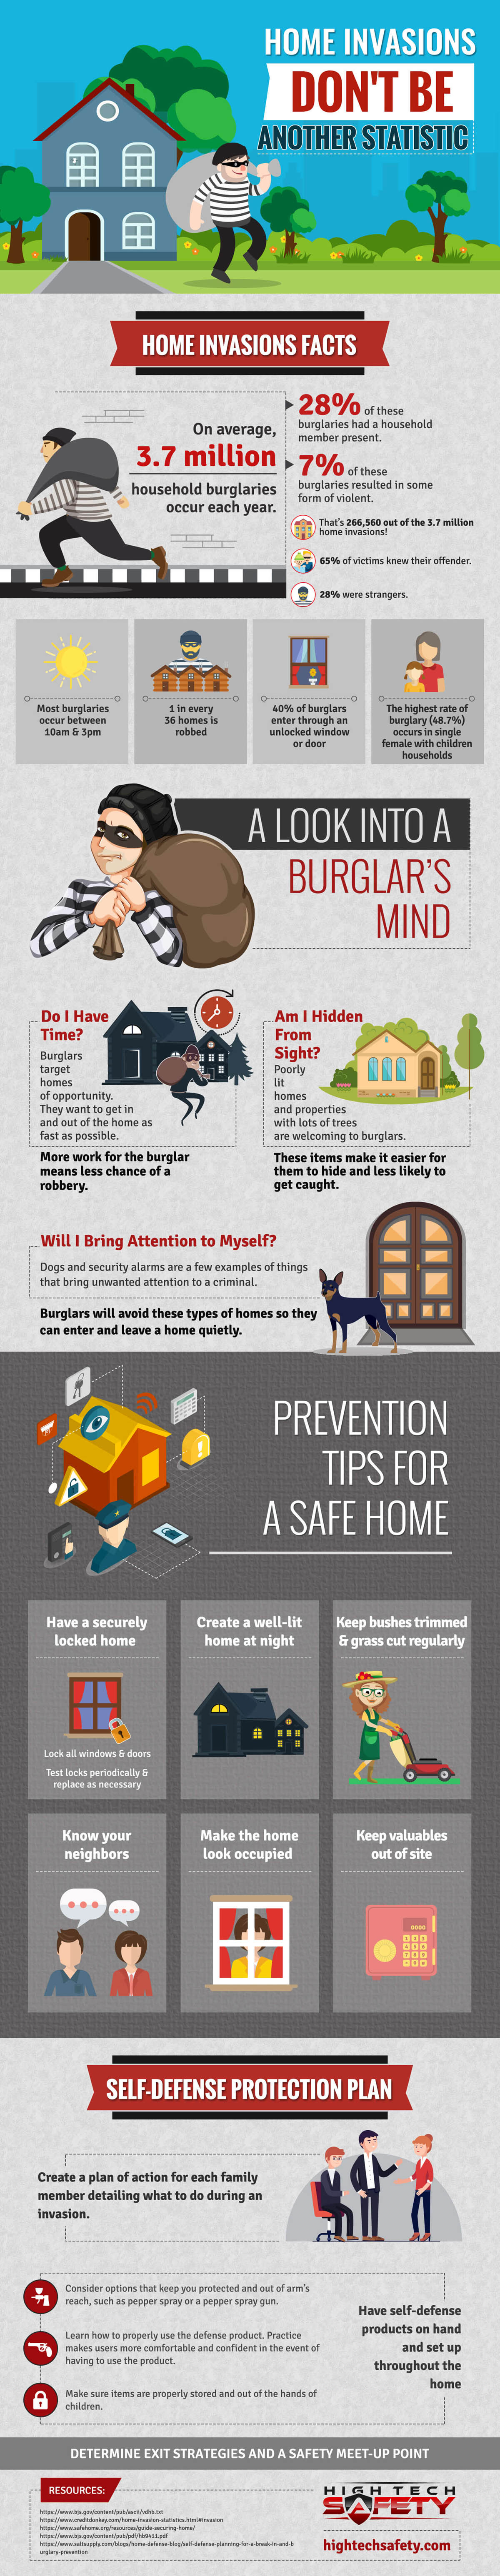 Home Invasions: Don't Be Another Statistic